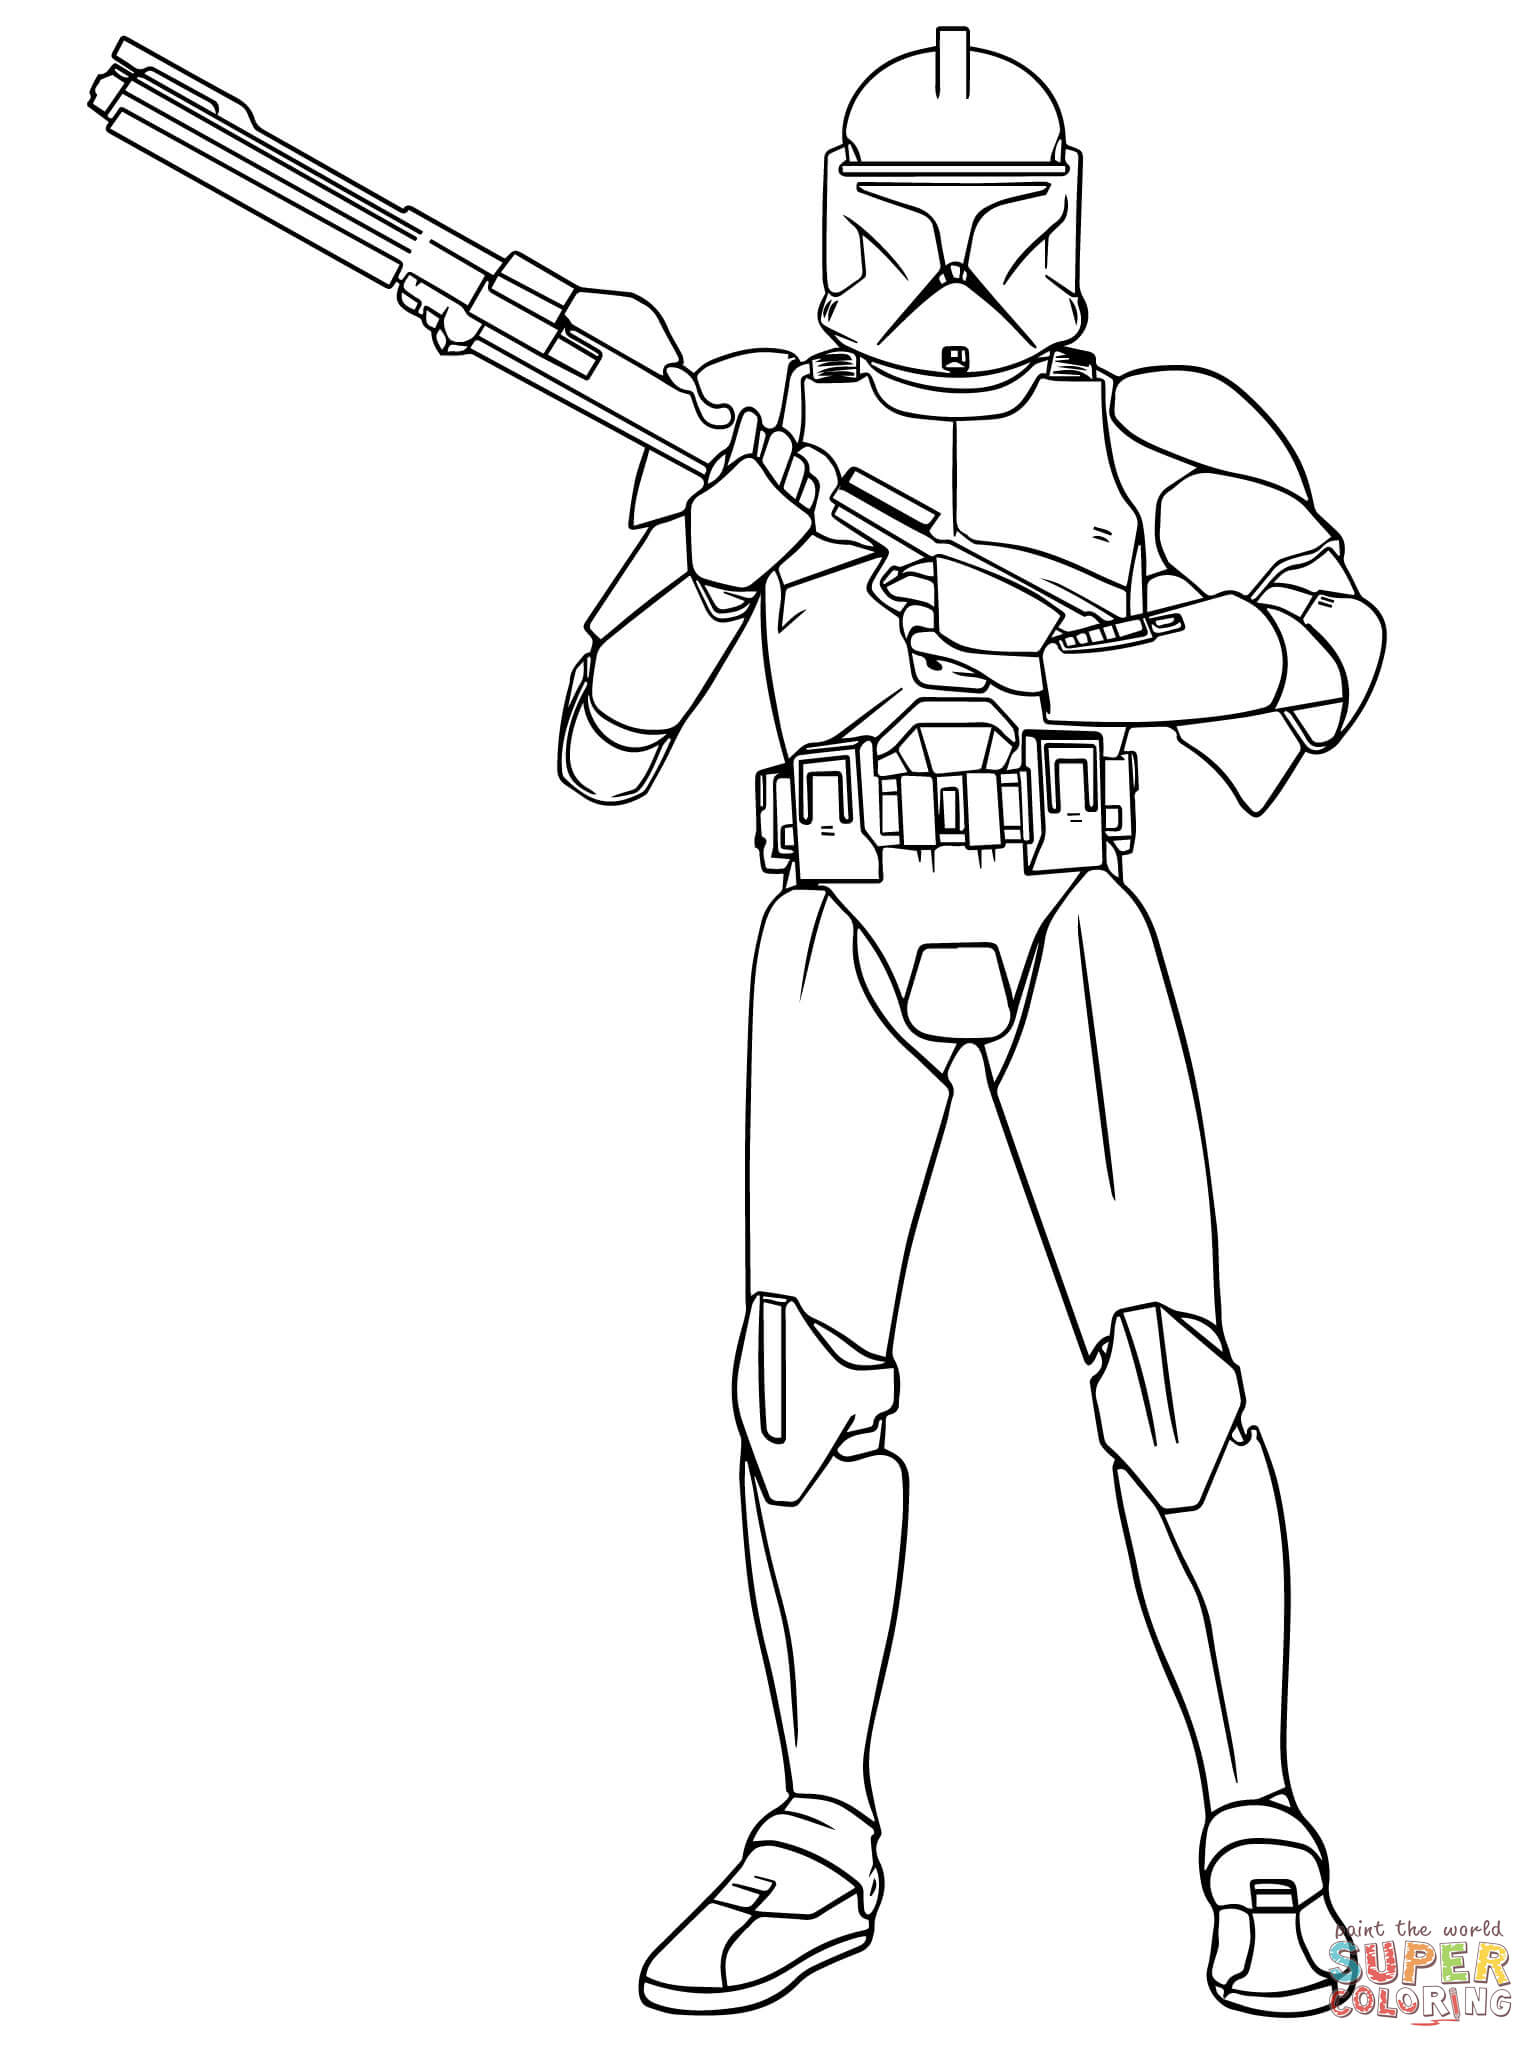 boba fett helmet coloring pages - coloring home - Boba Fett Coloring Pages Printable